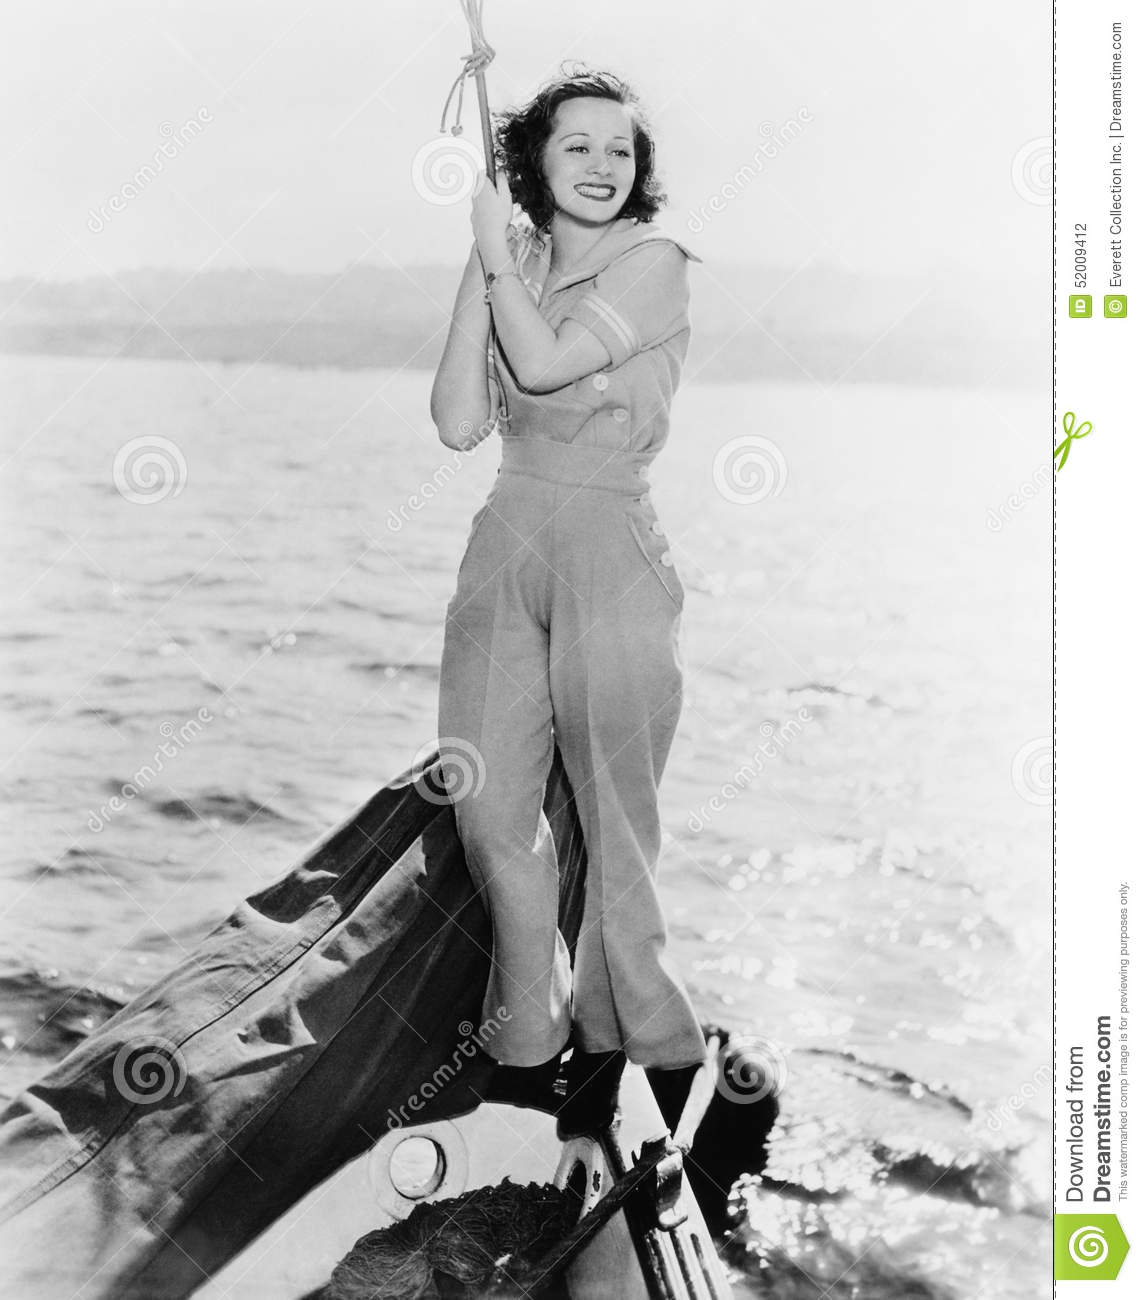 Portrait of woman on boat